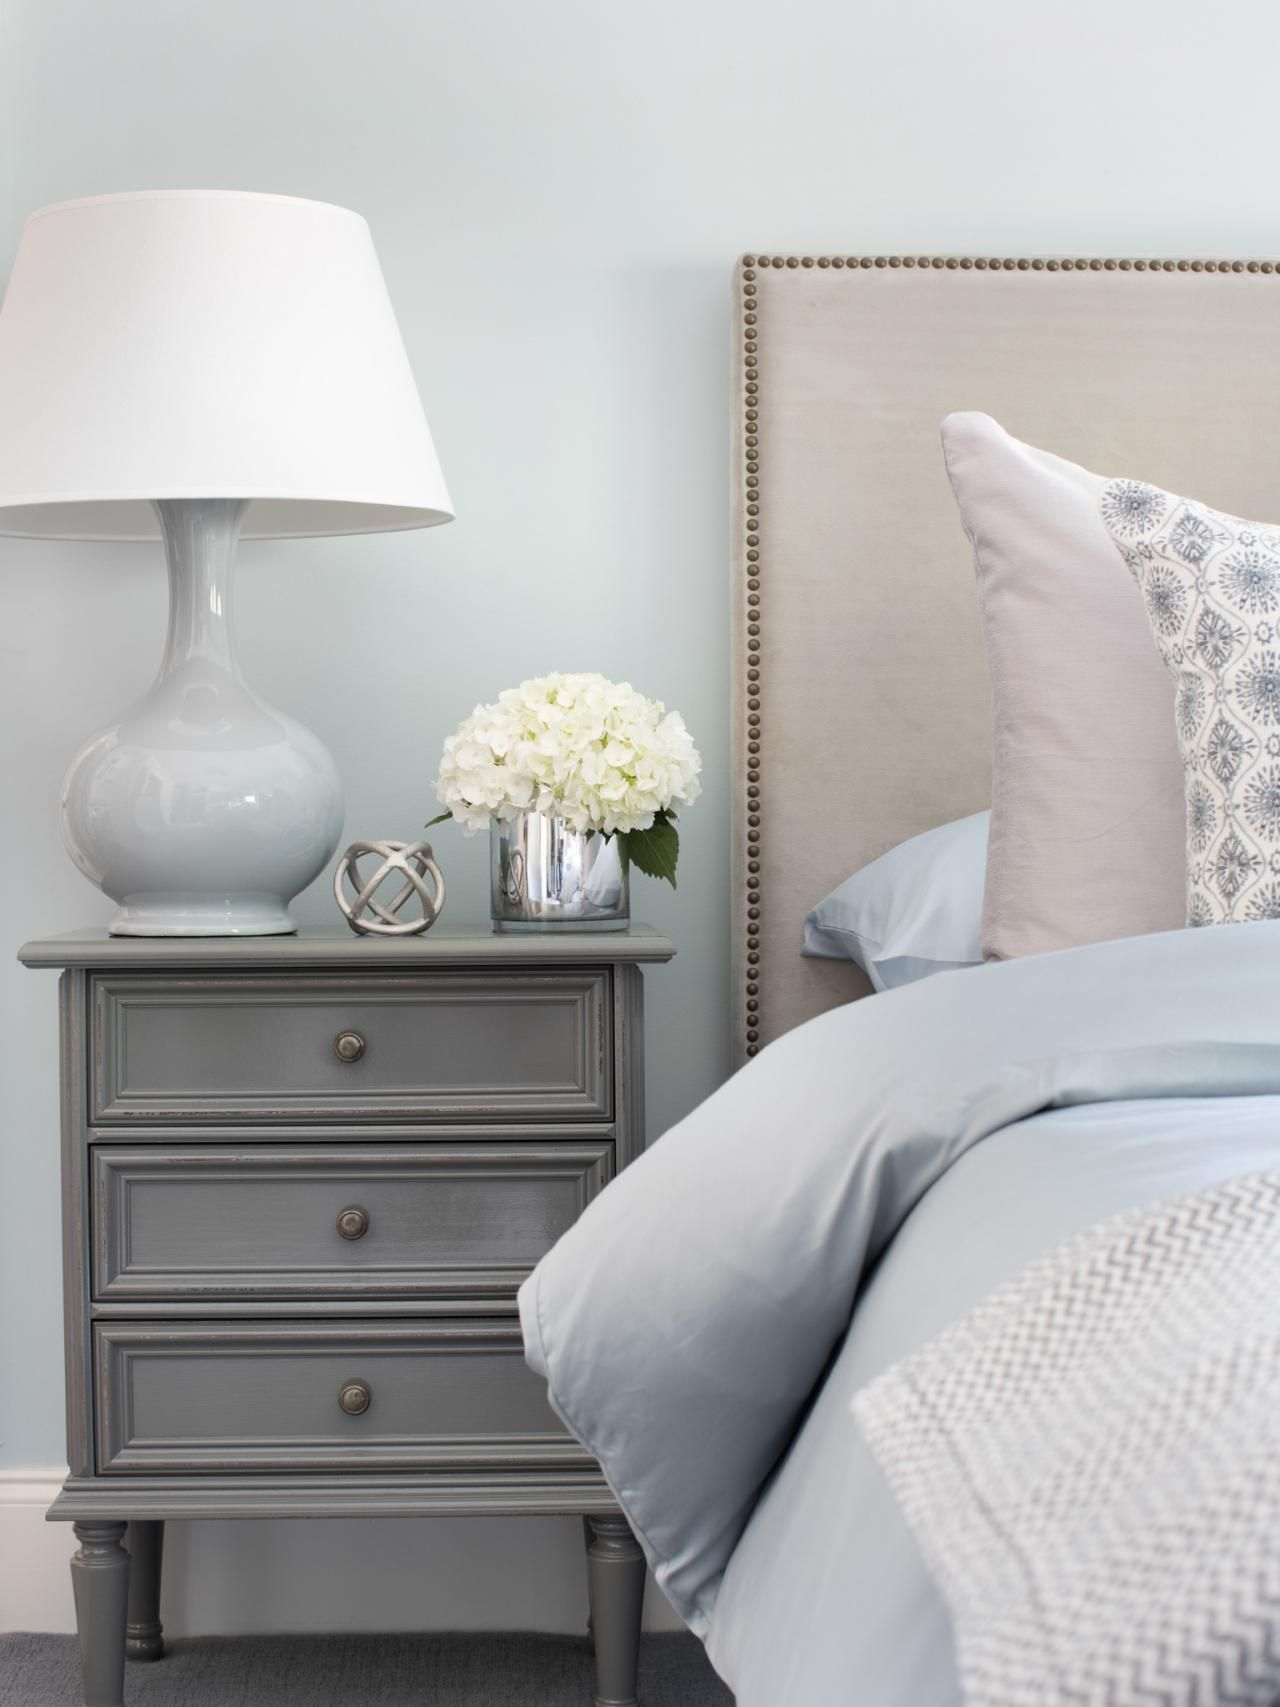 Grey Bedside Tables: Welcoming Guest Bedroom Ideas For Winter Visitors